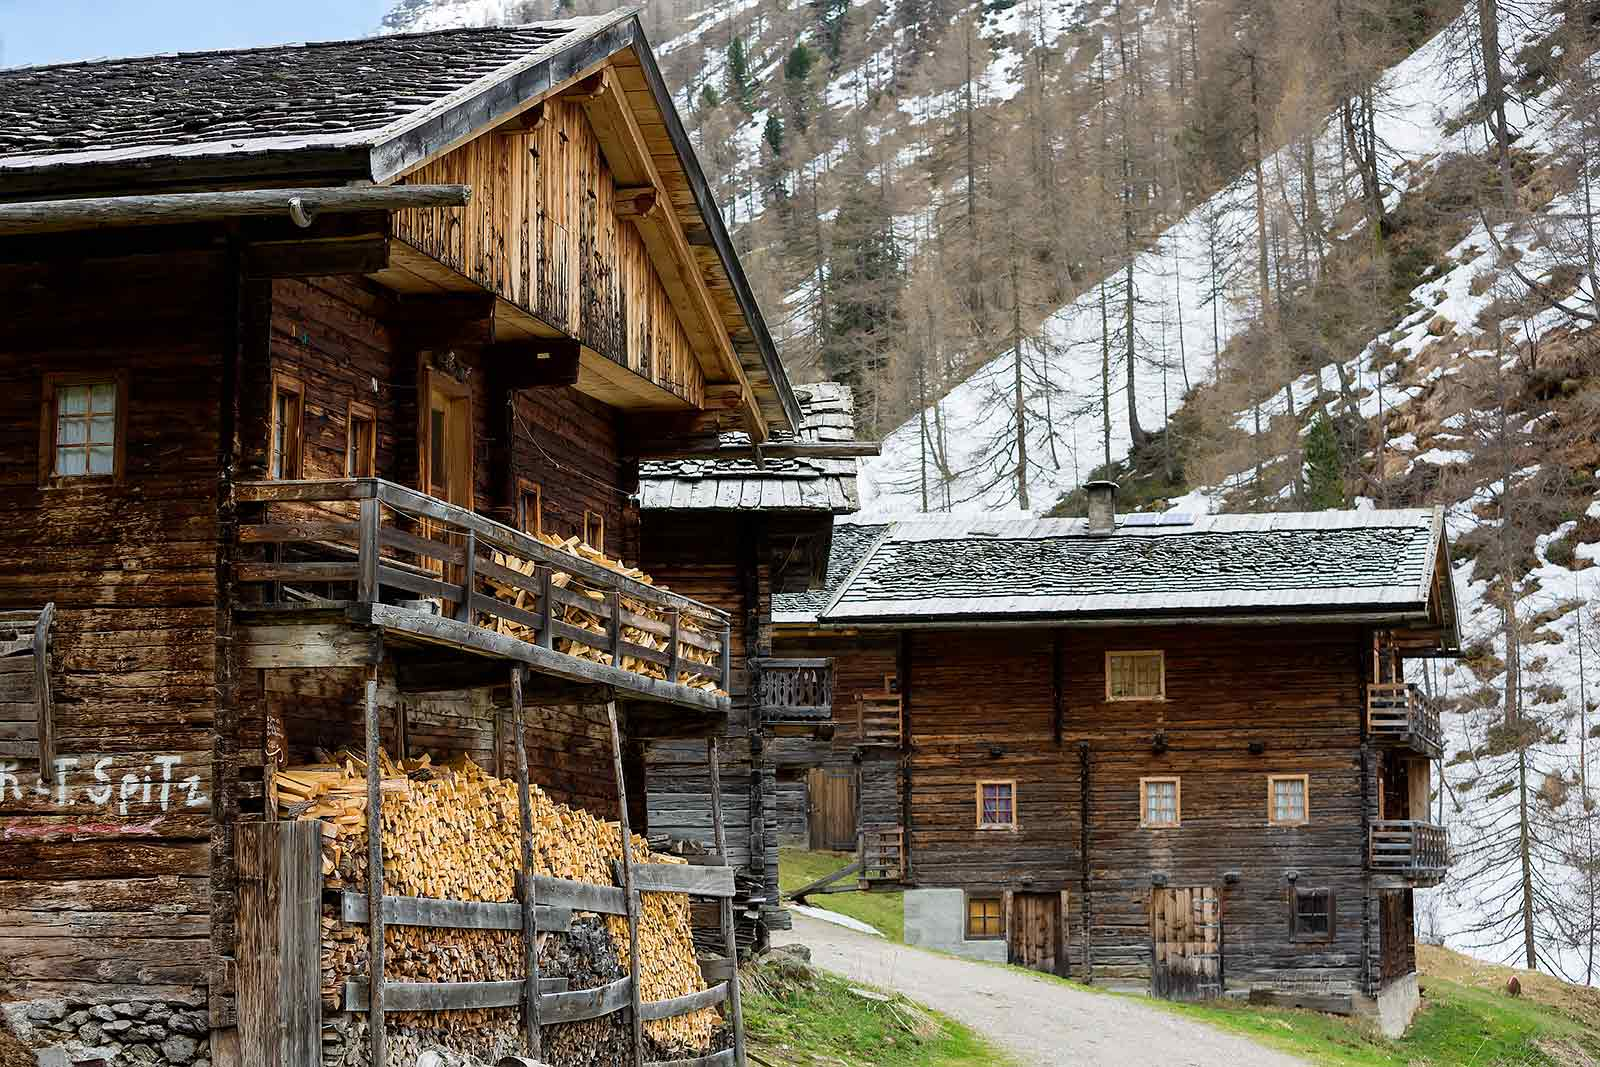 Apart from vacationers renting one of the farm houses at Oberstalleralm, you'll only come across hikers once in a while.